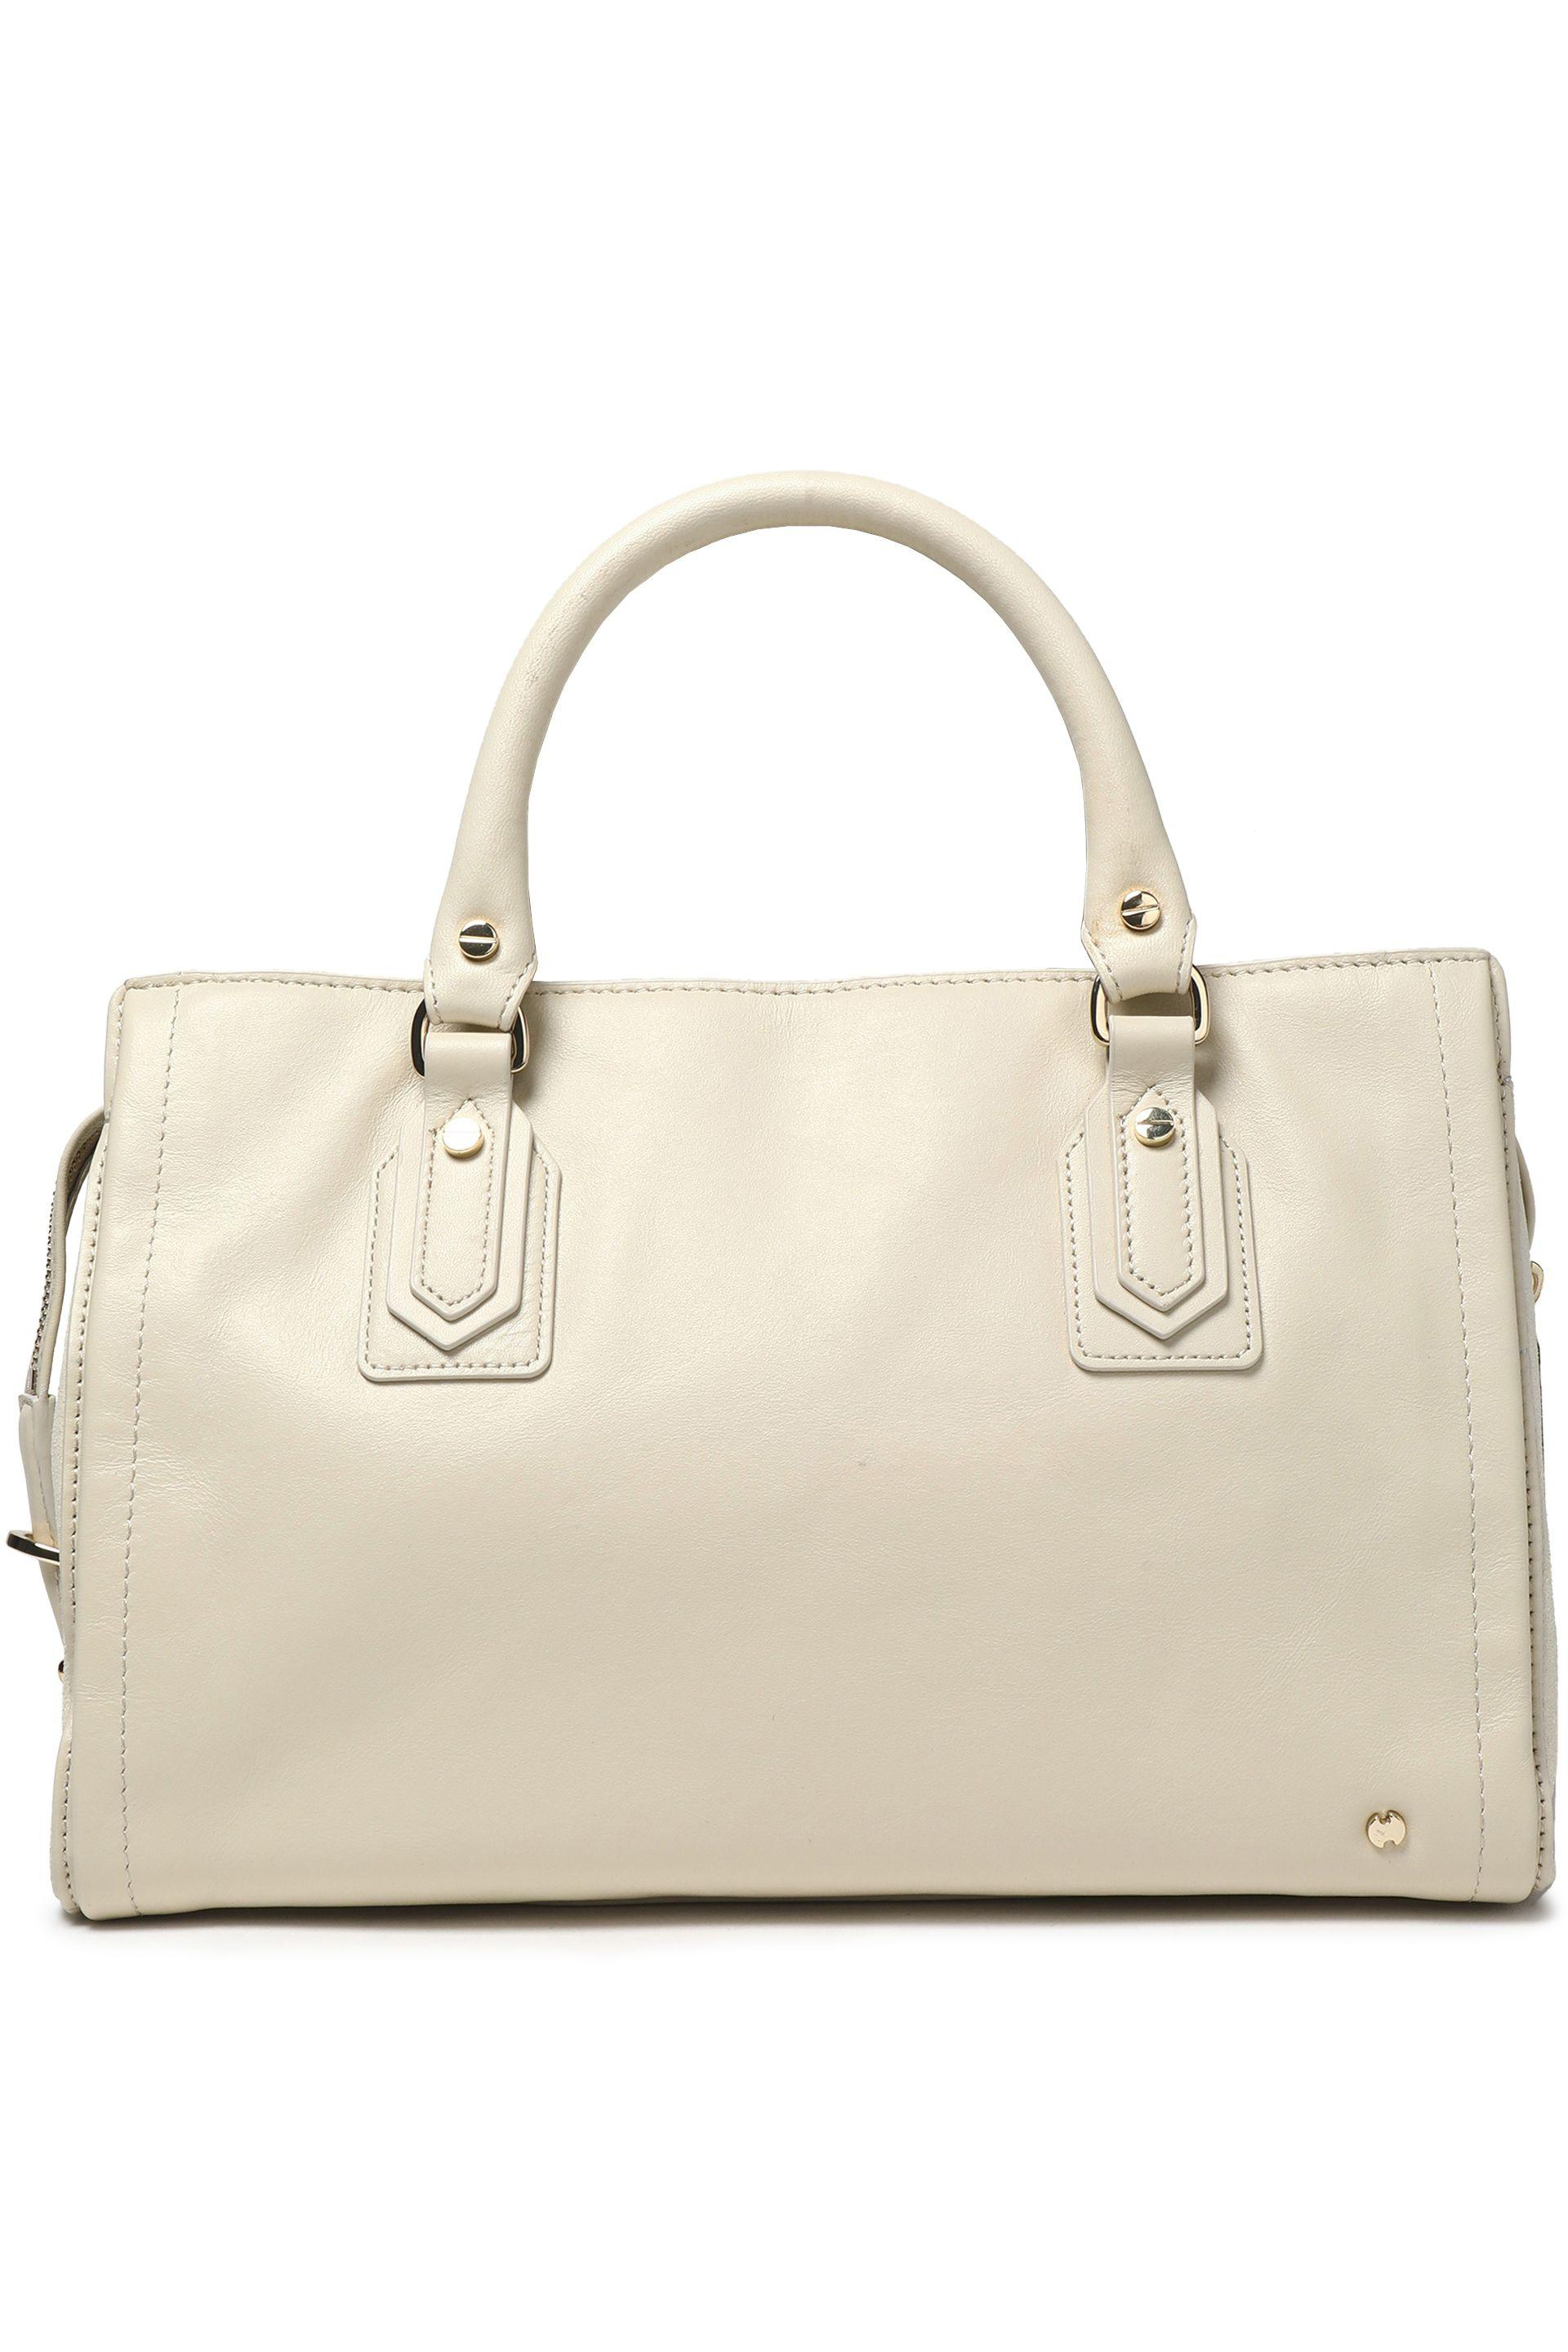 484ee9d095 Halston Heritage - Multicolor Woman Leather Shoulder Bag Off-white Size --  - Lyst. View fullscreen